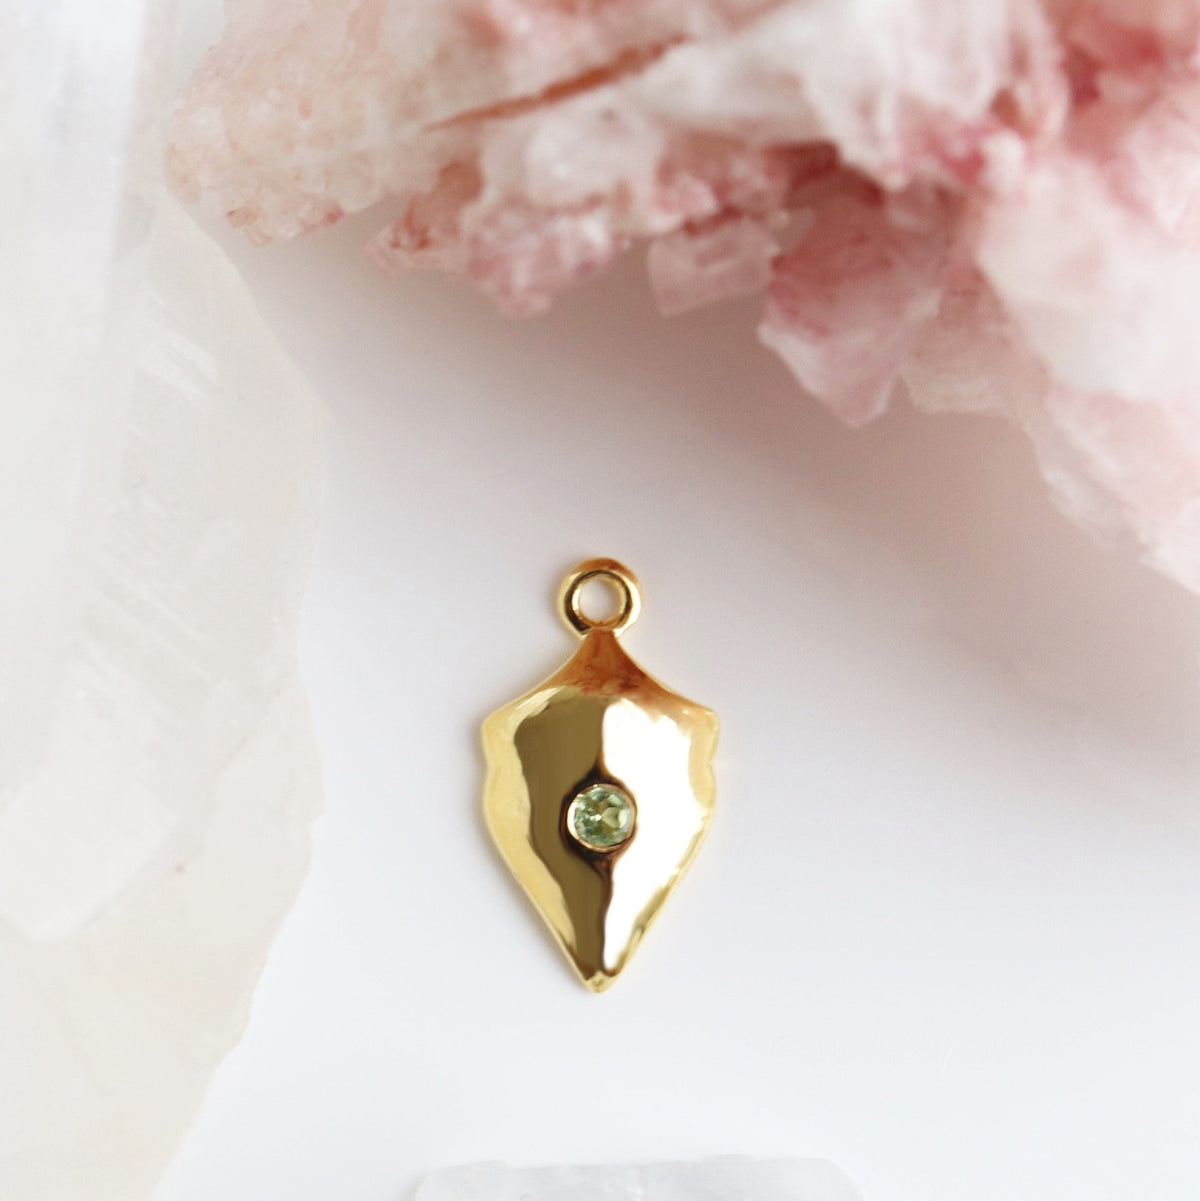 LEGACY AUGUST BIRTHSTONE SHIELD ICON - PERIDOT & GOLD - SO PRETTY CARA COTTER